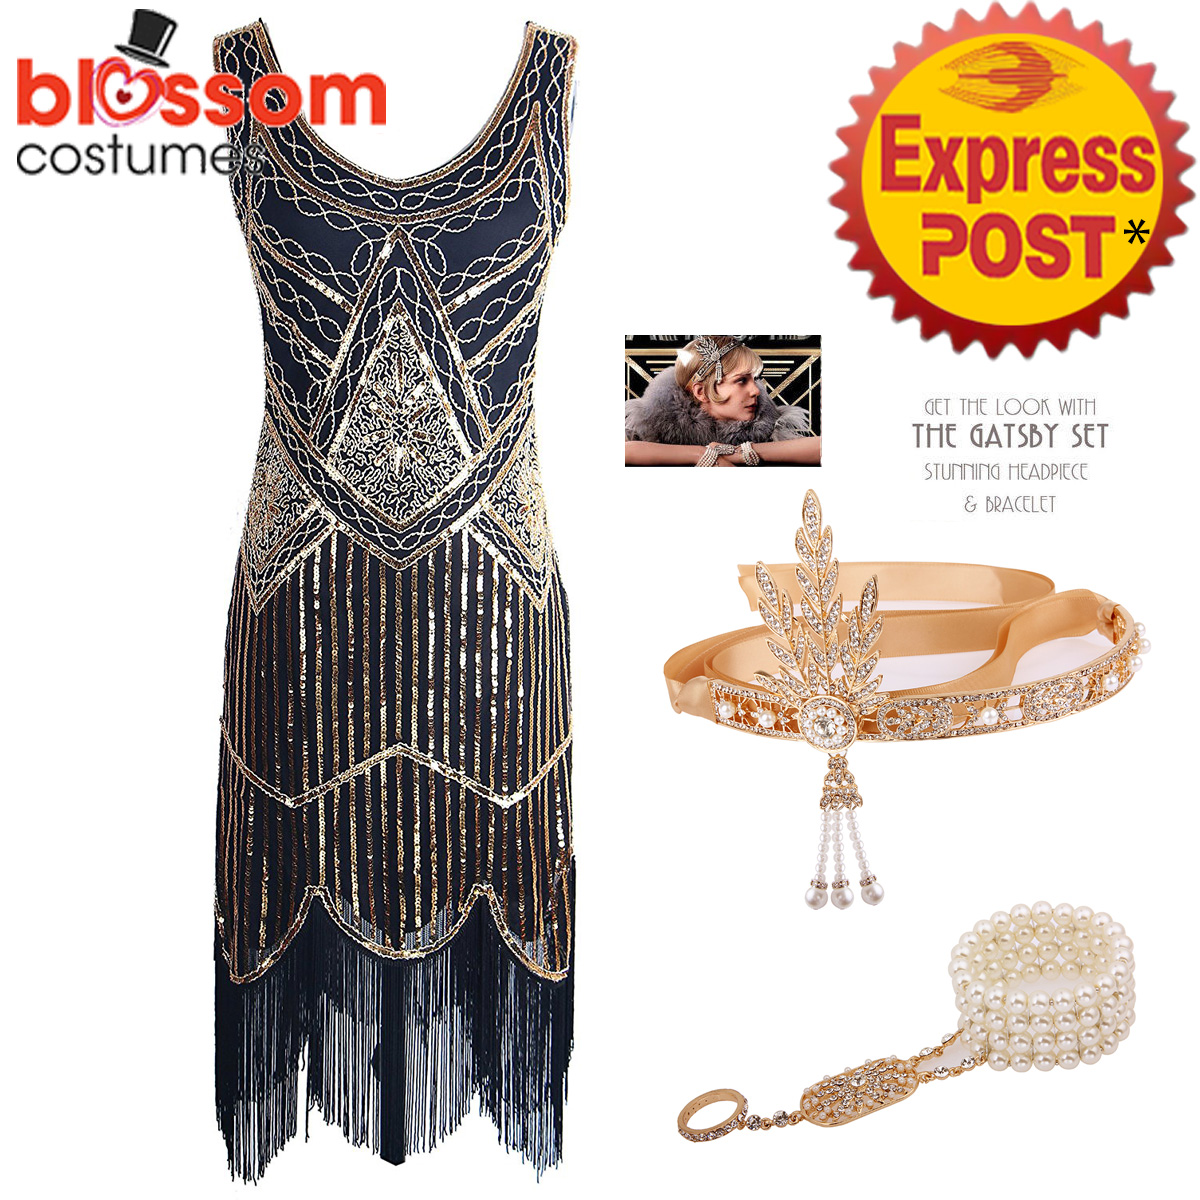 K298-Gold-Ladies-1920s-Roaring-20s-Flapper-Costume-Sequin-Gatsby-Outfit-Dress-Up